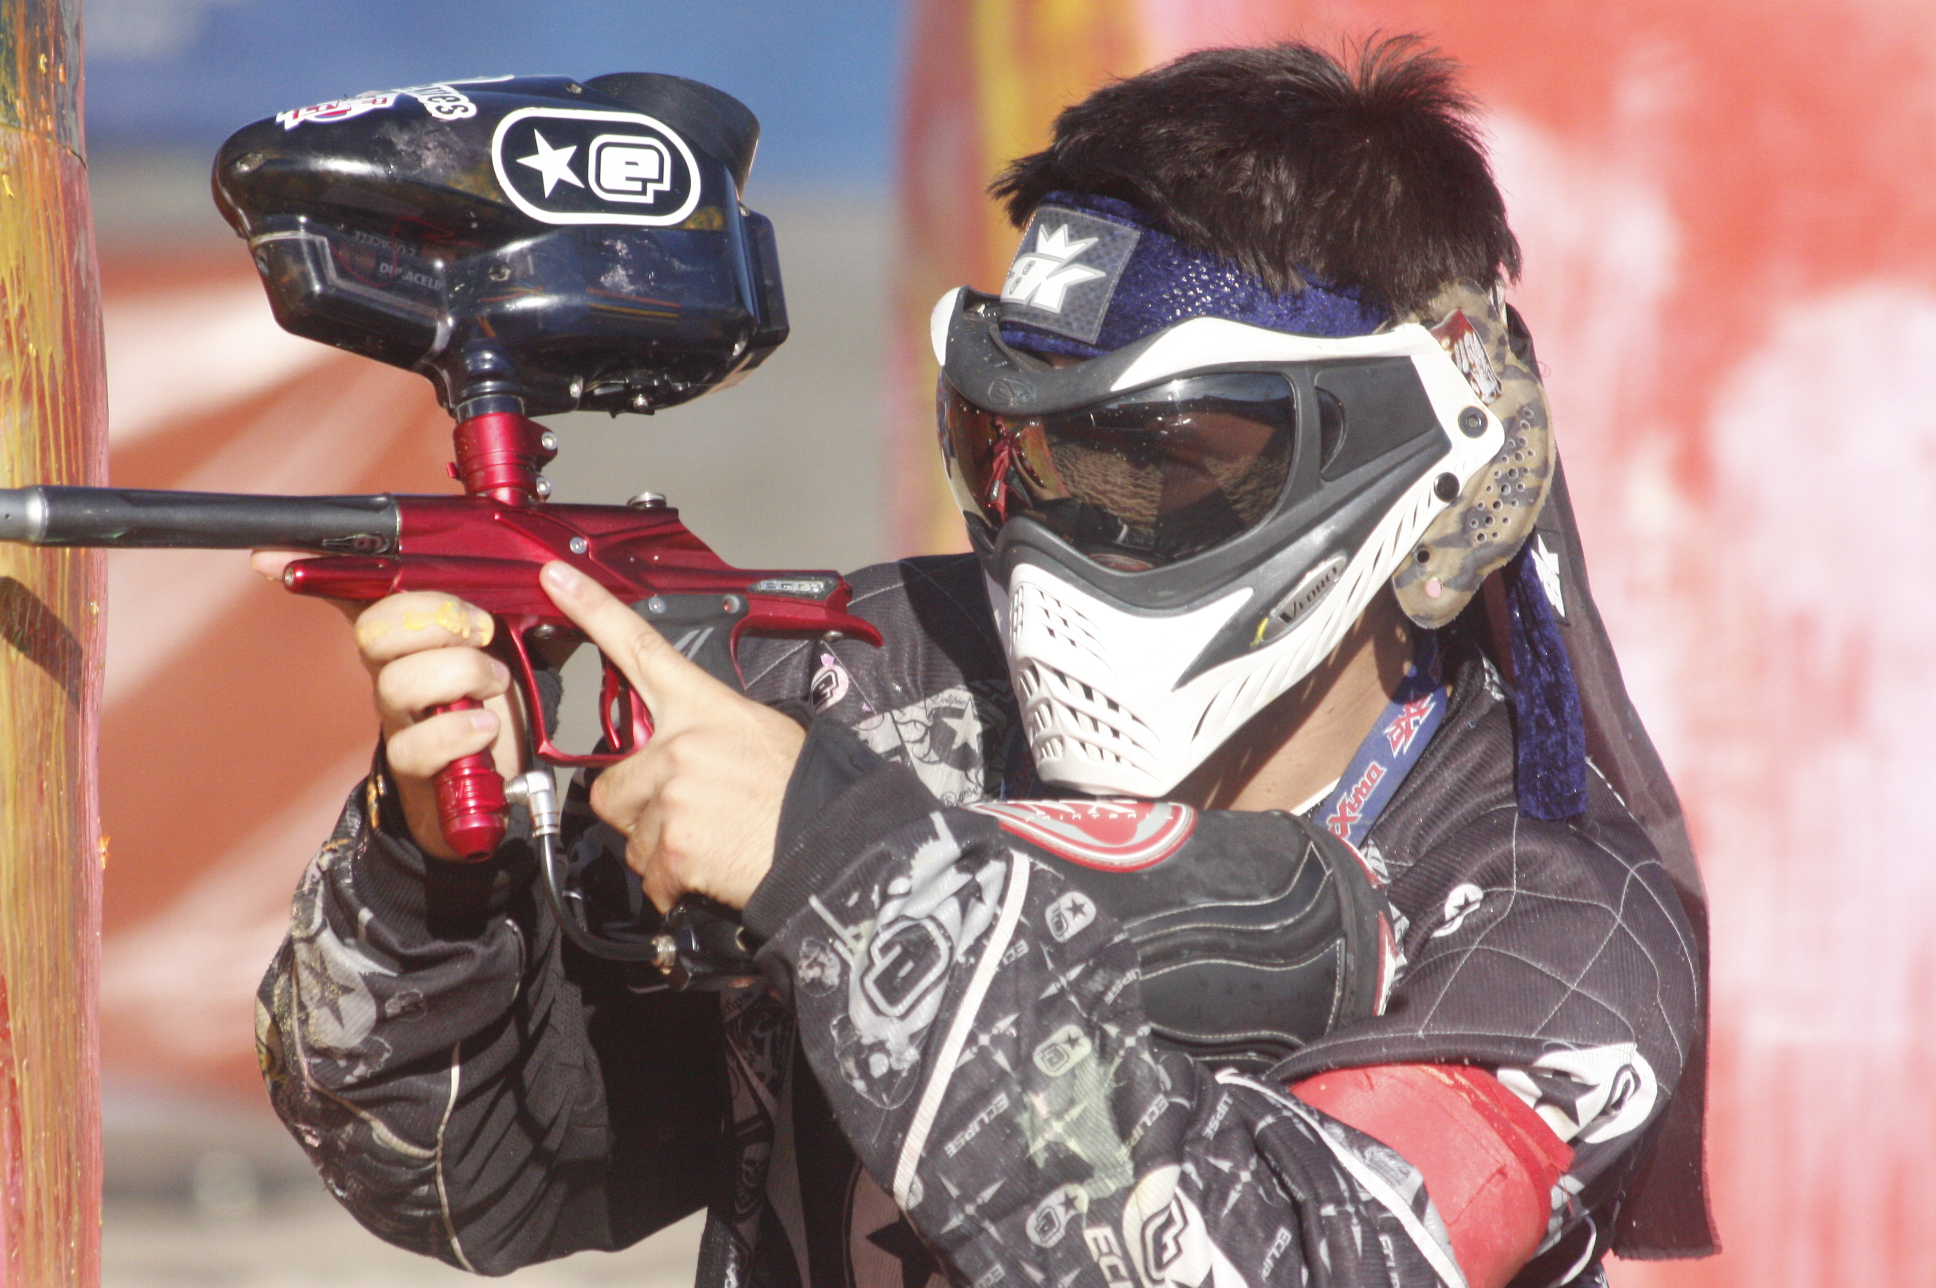 Arena 3x3 paintball